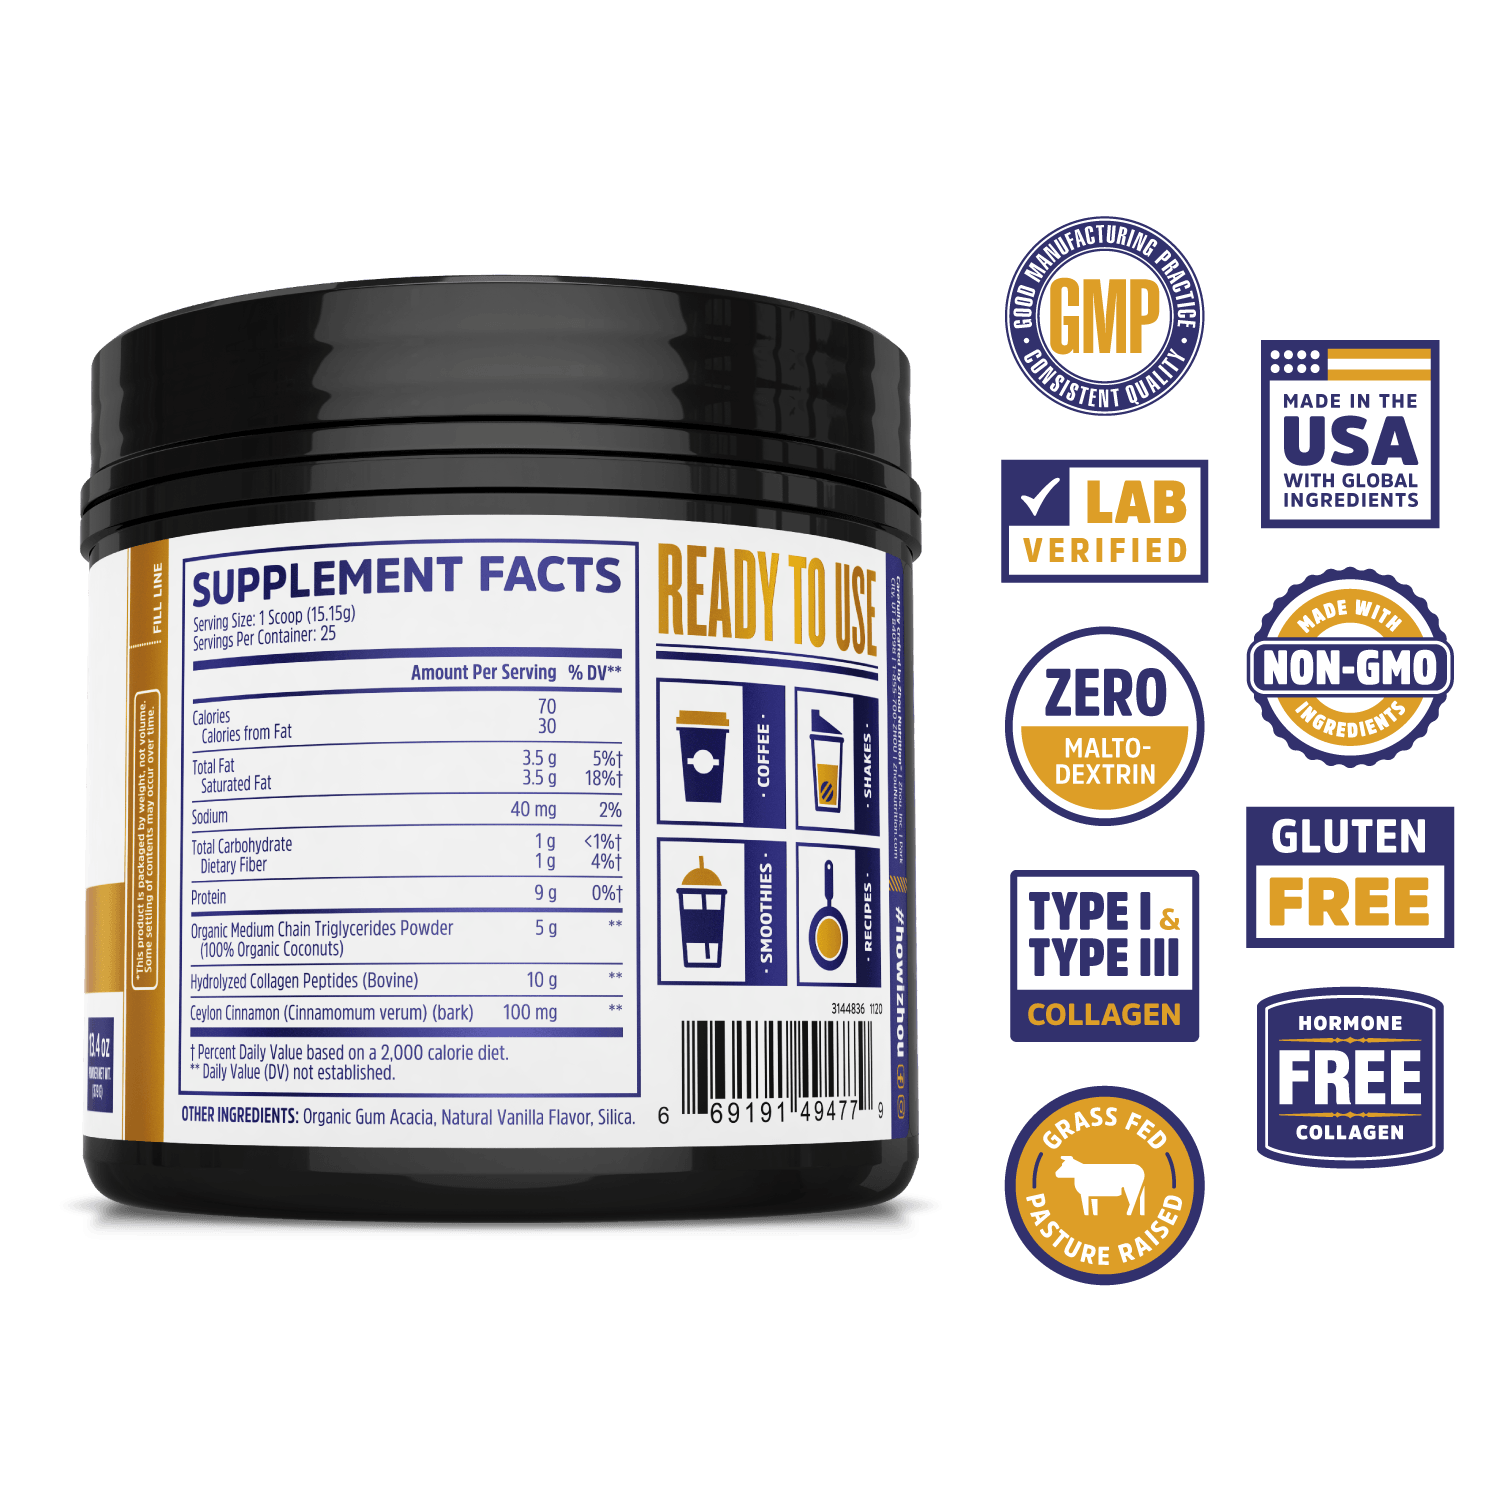 Zhou Nutrition MCT Collagen powder supplement. Lab verified, good manufacturing practices, made in the USA with global ingredients, made with non-GMO ingredients, gluten free